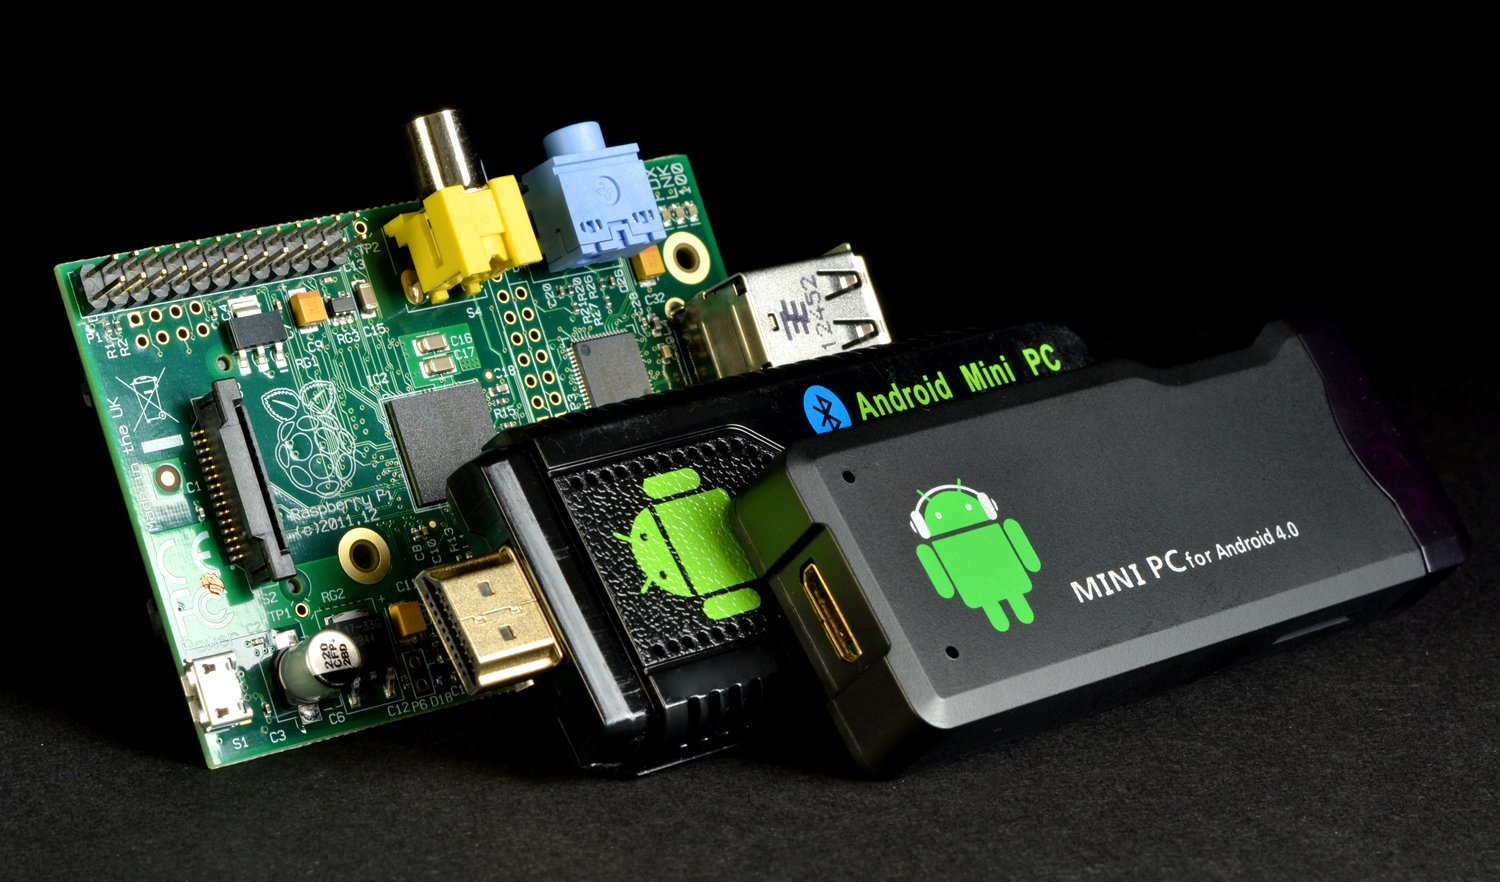 Take Your Tv To The Next Level With The Best Android Mini Pc